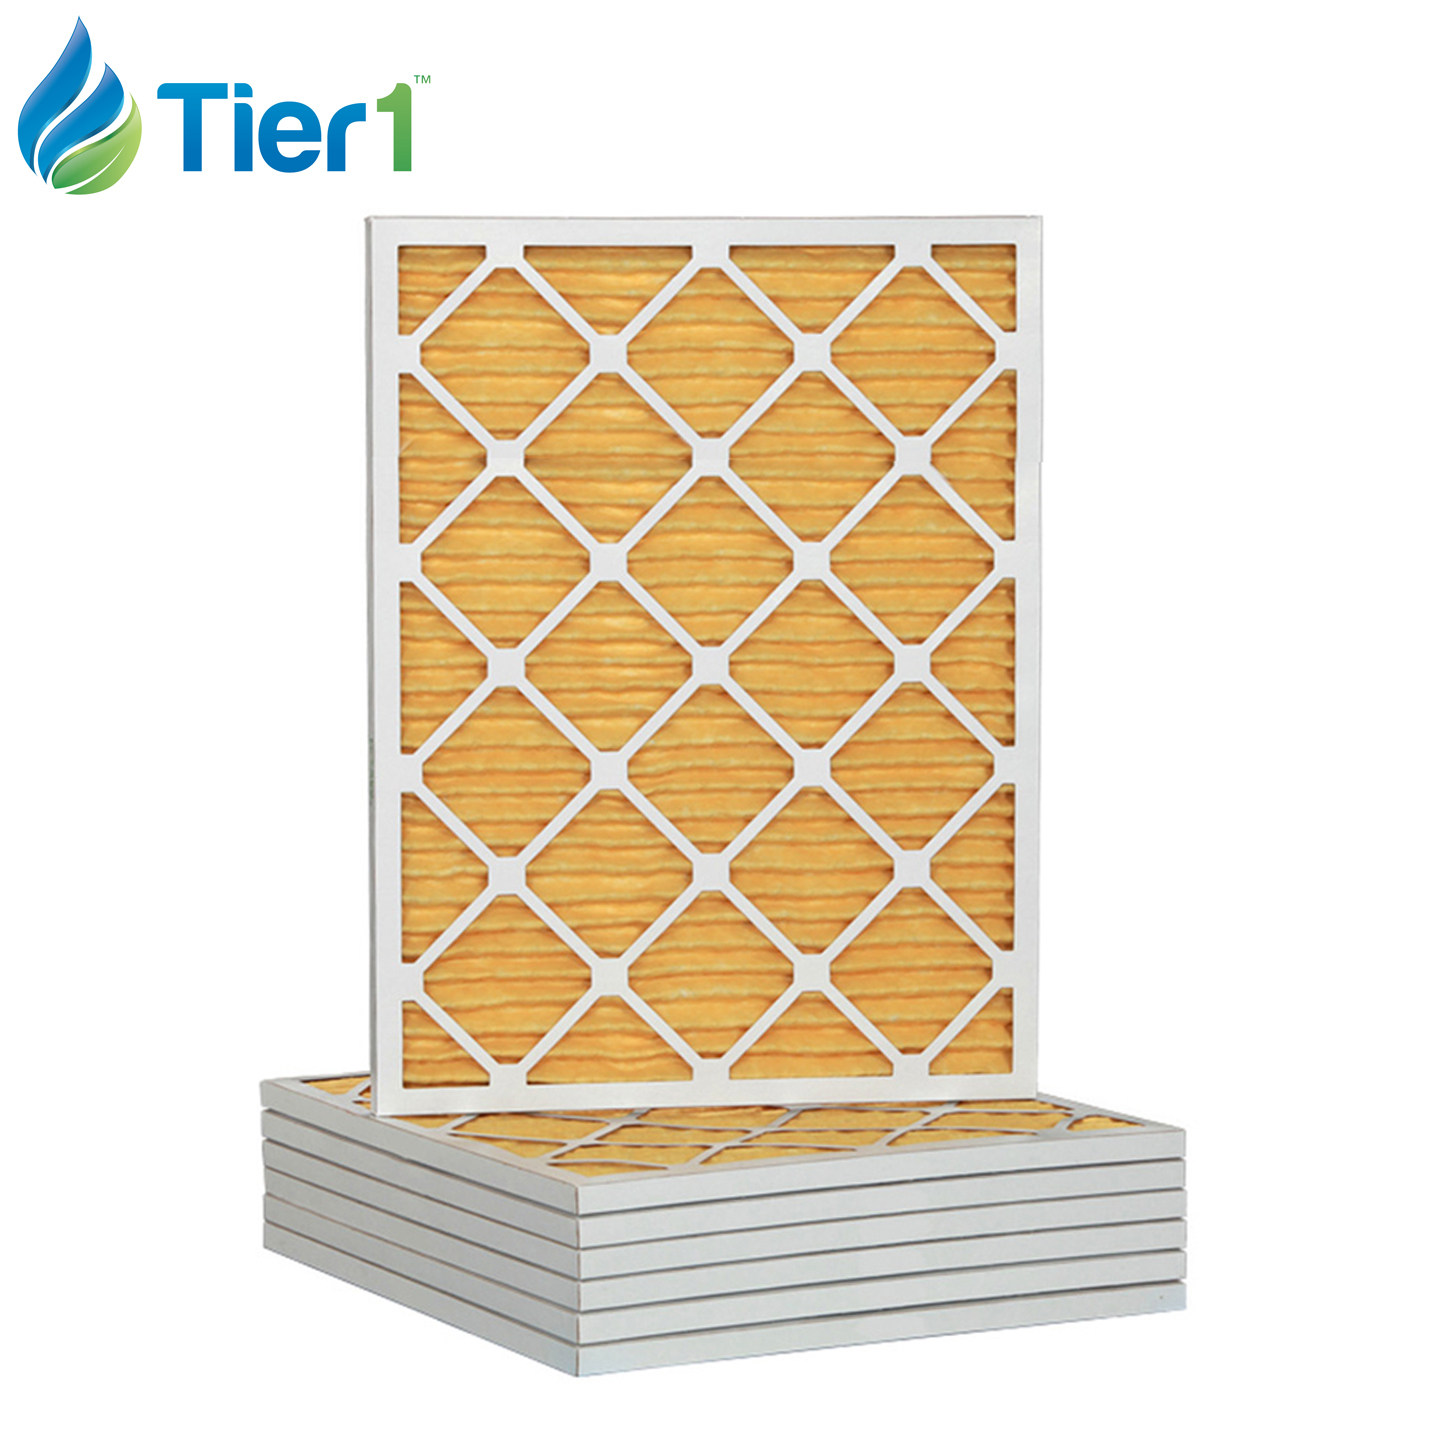 Tier1 Air Filters